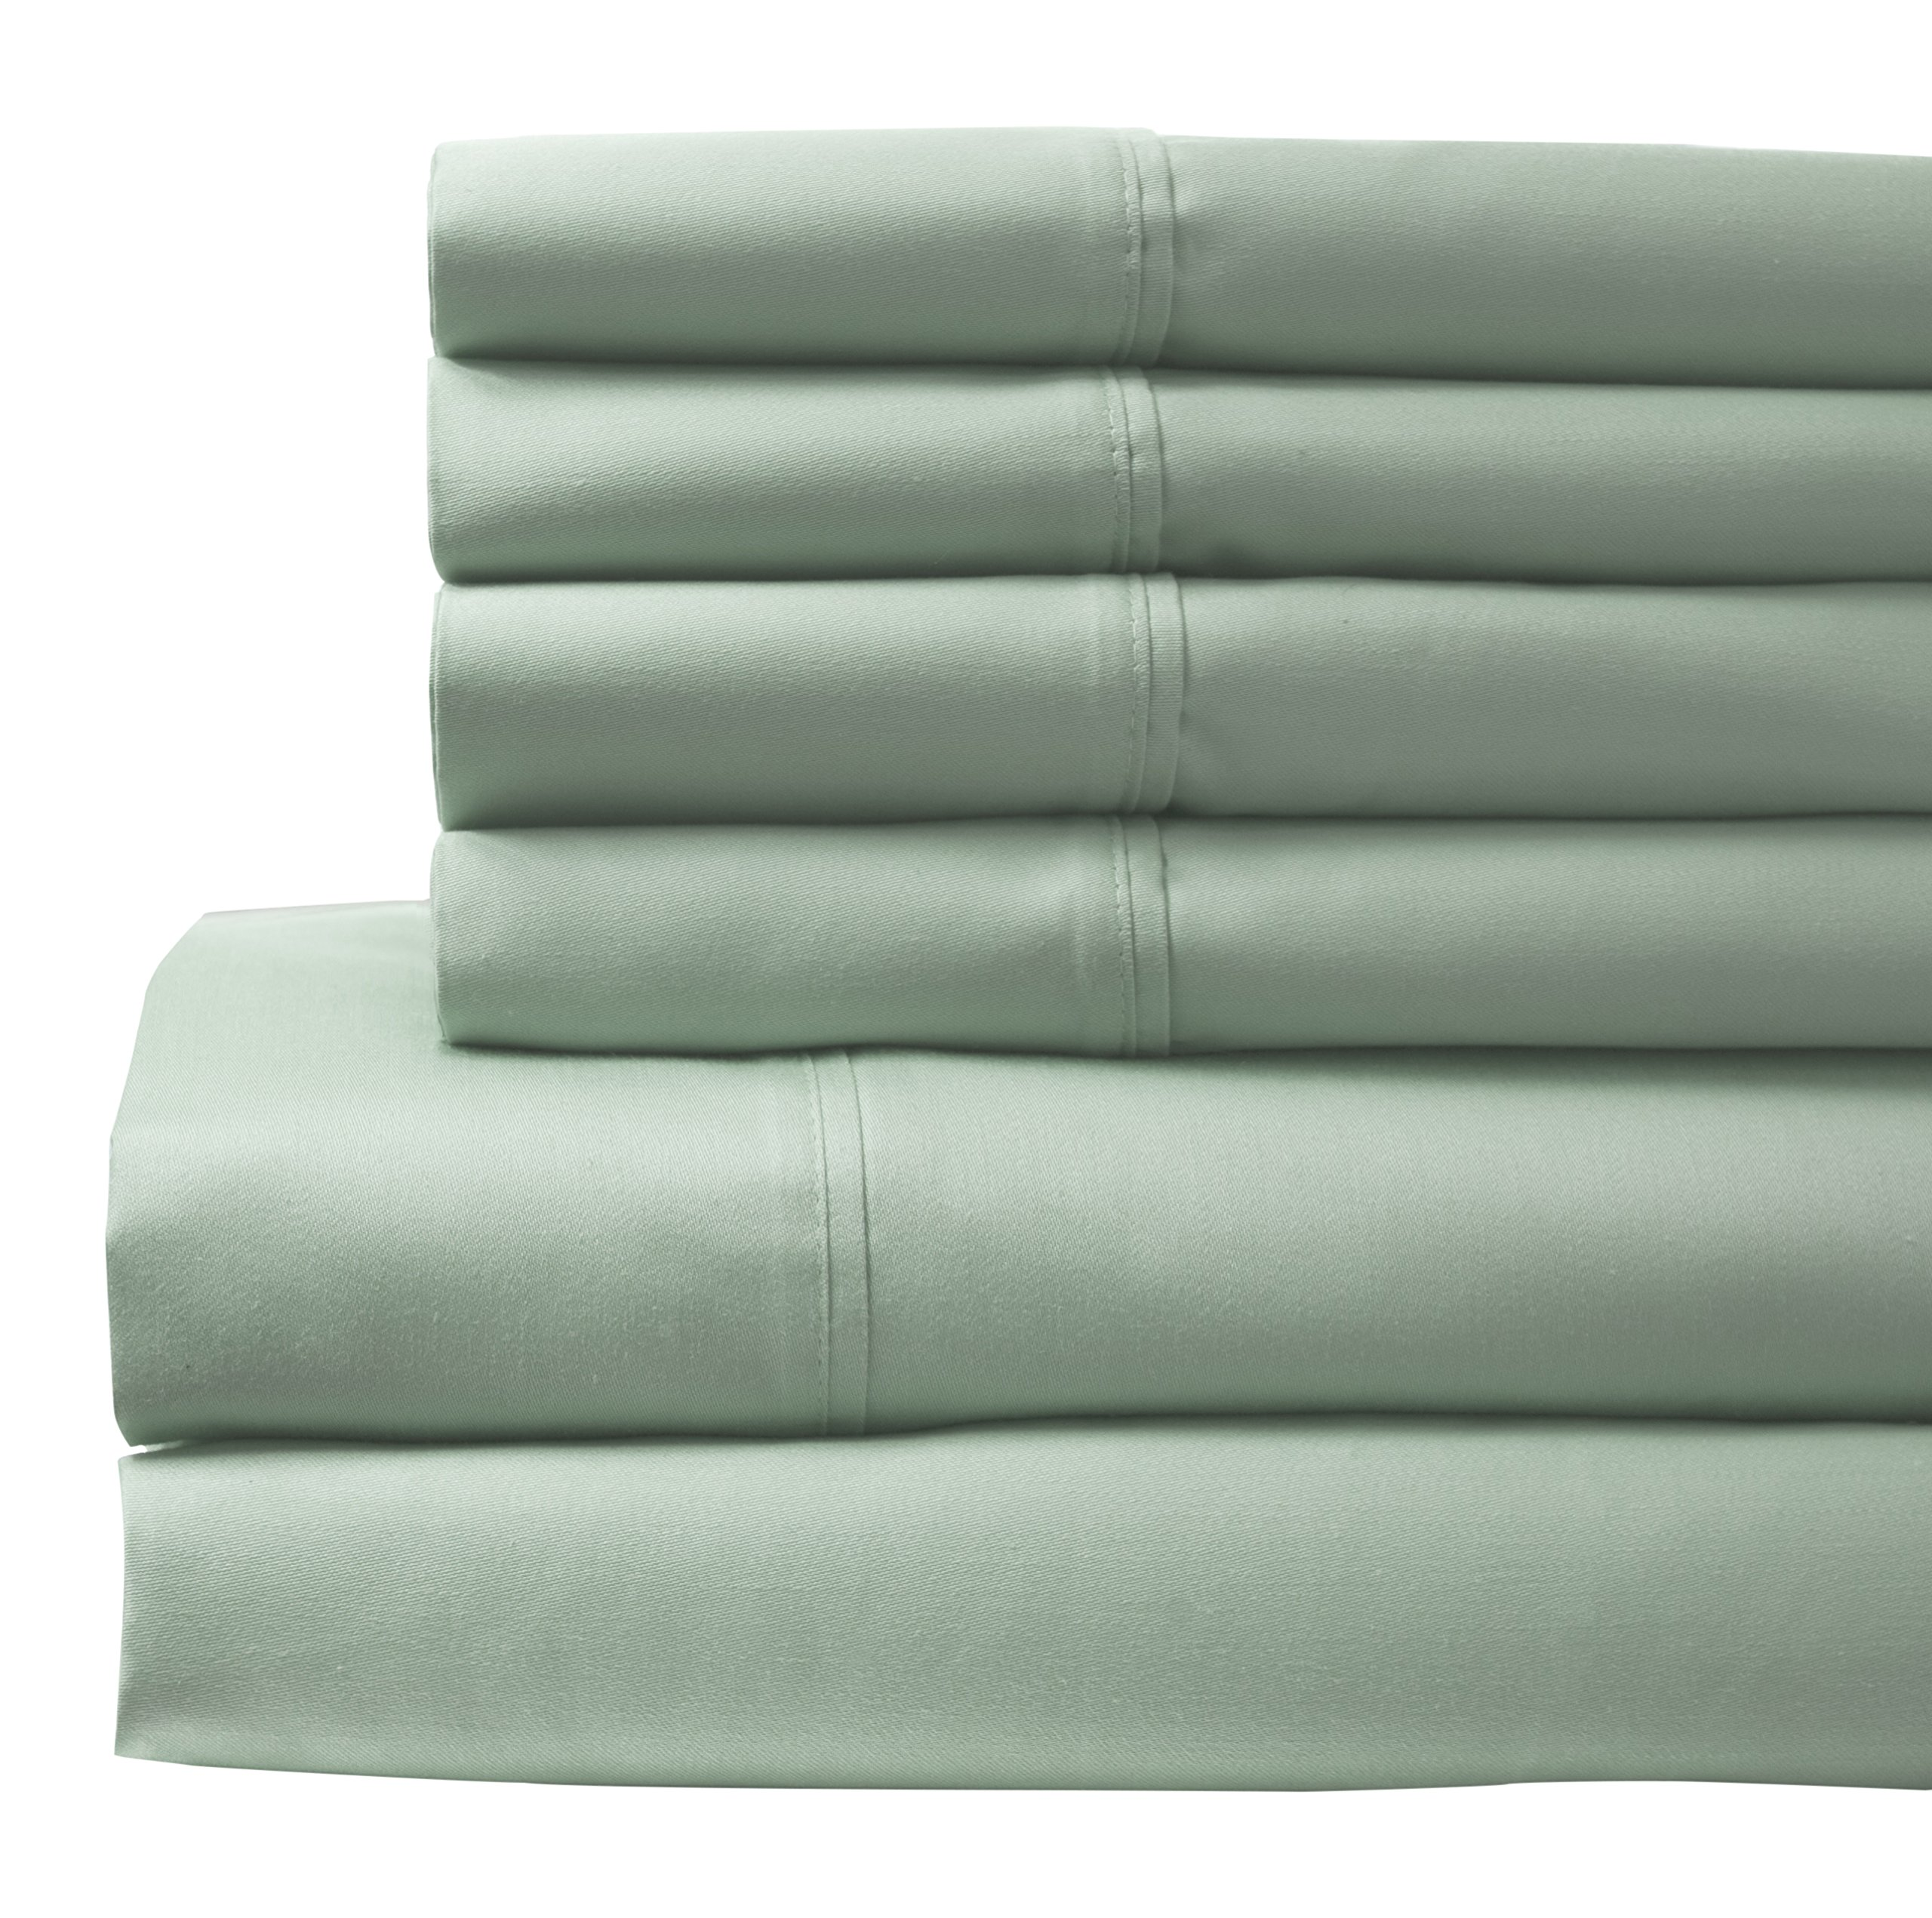 Elite Home Products 400SSFU425COBO Full T400 100% Cotton Bonus Sheet Sets, Spa